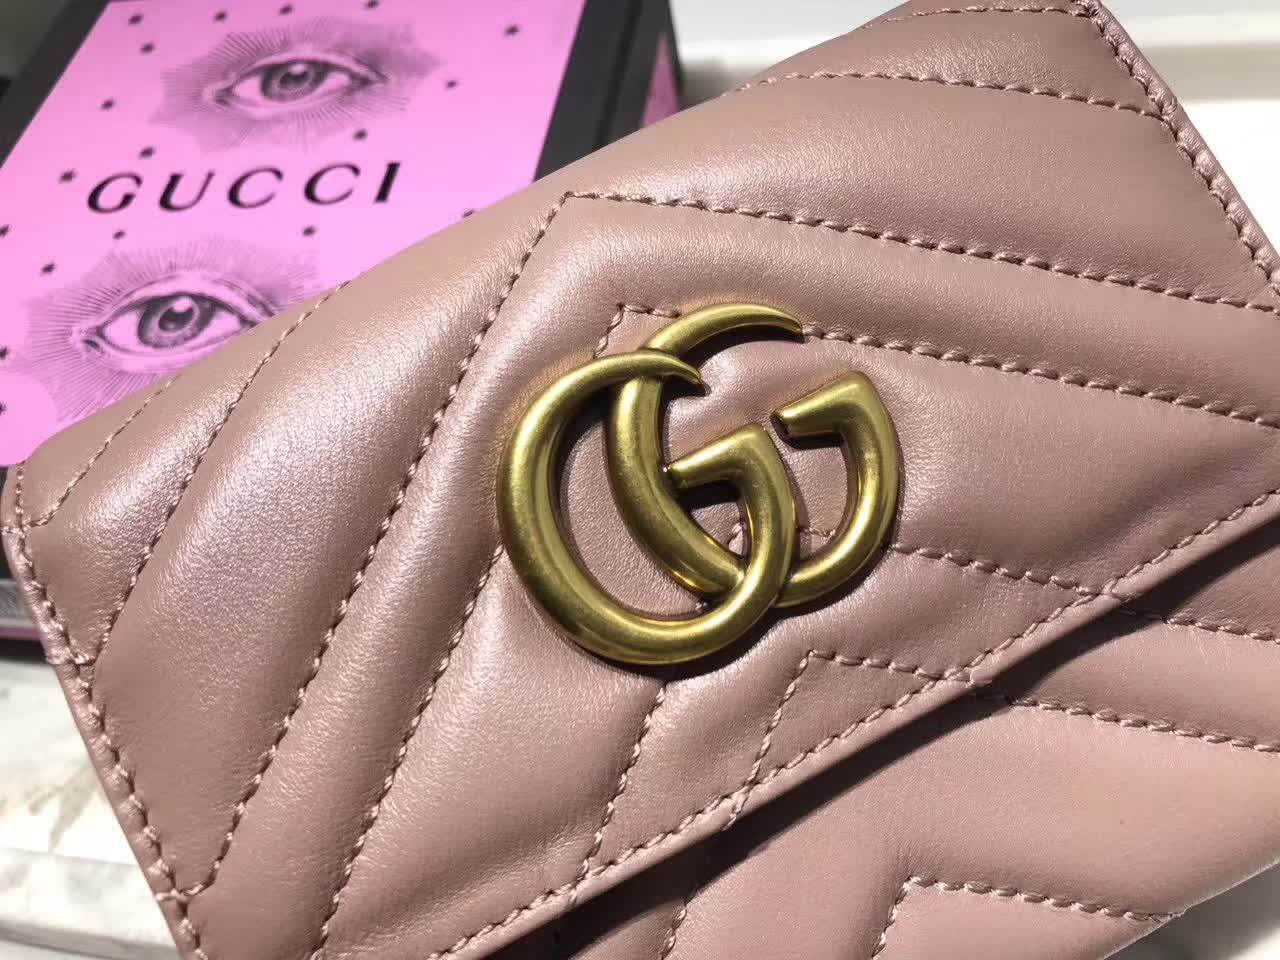 3 Colors Gg Gucci Marmont Wallet Trifold Leather Card